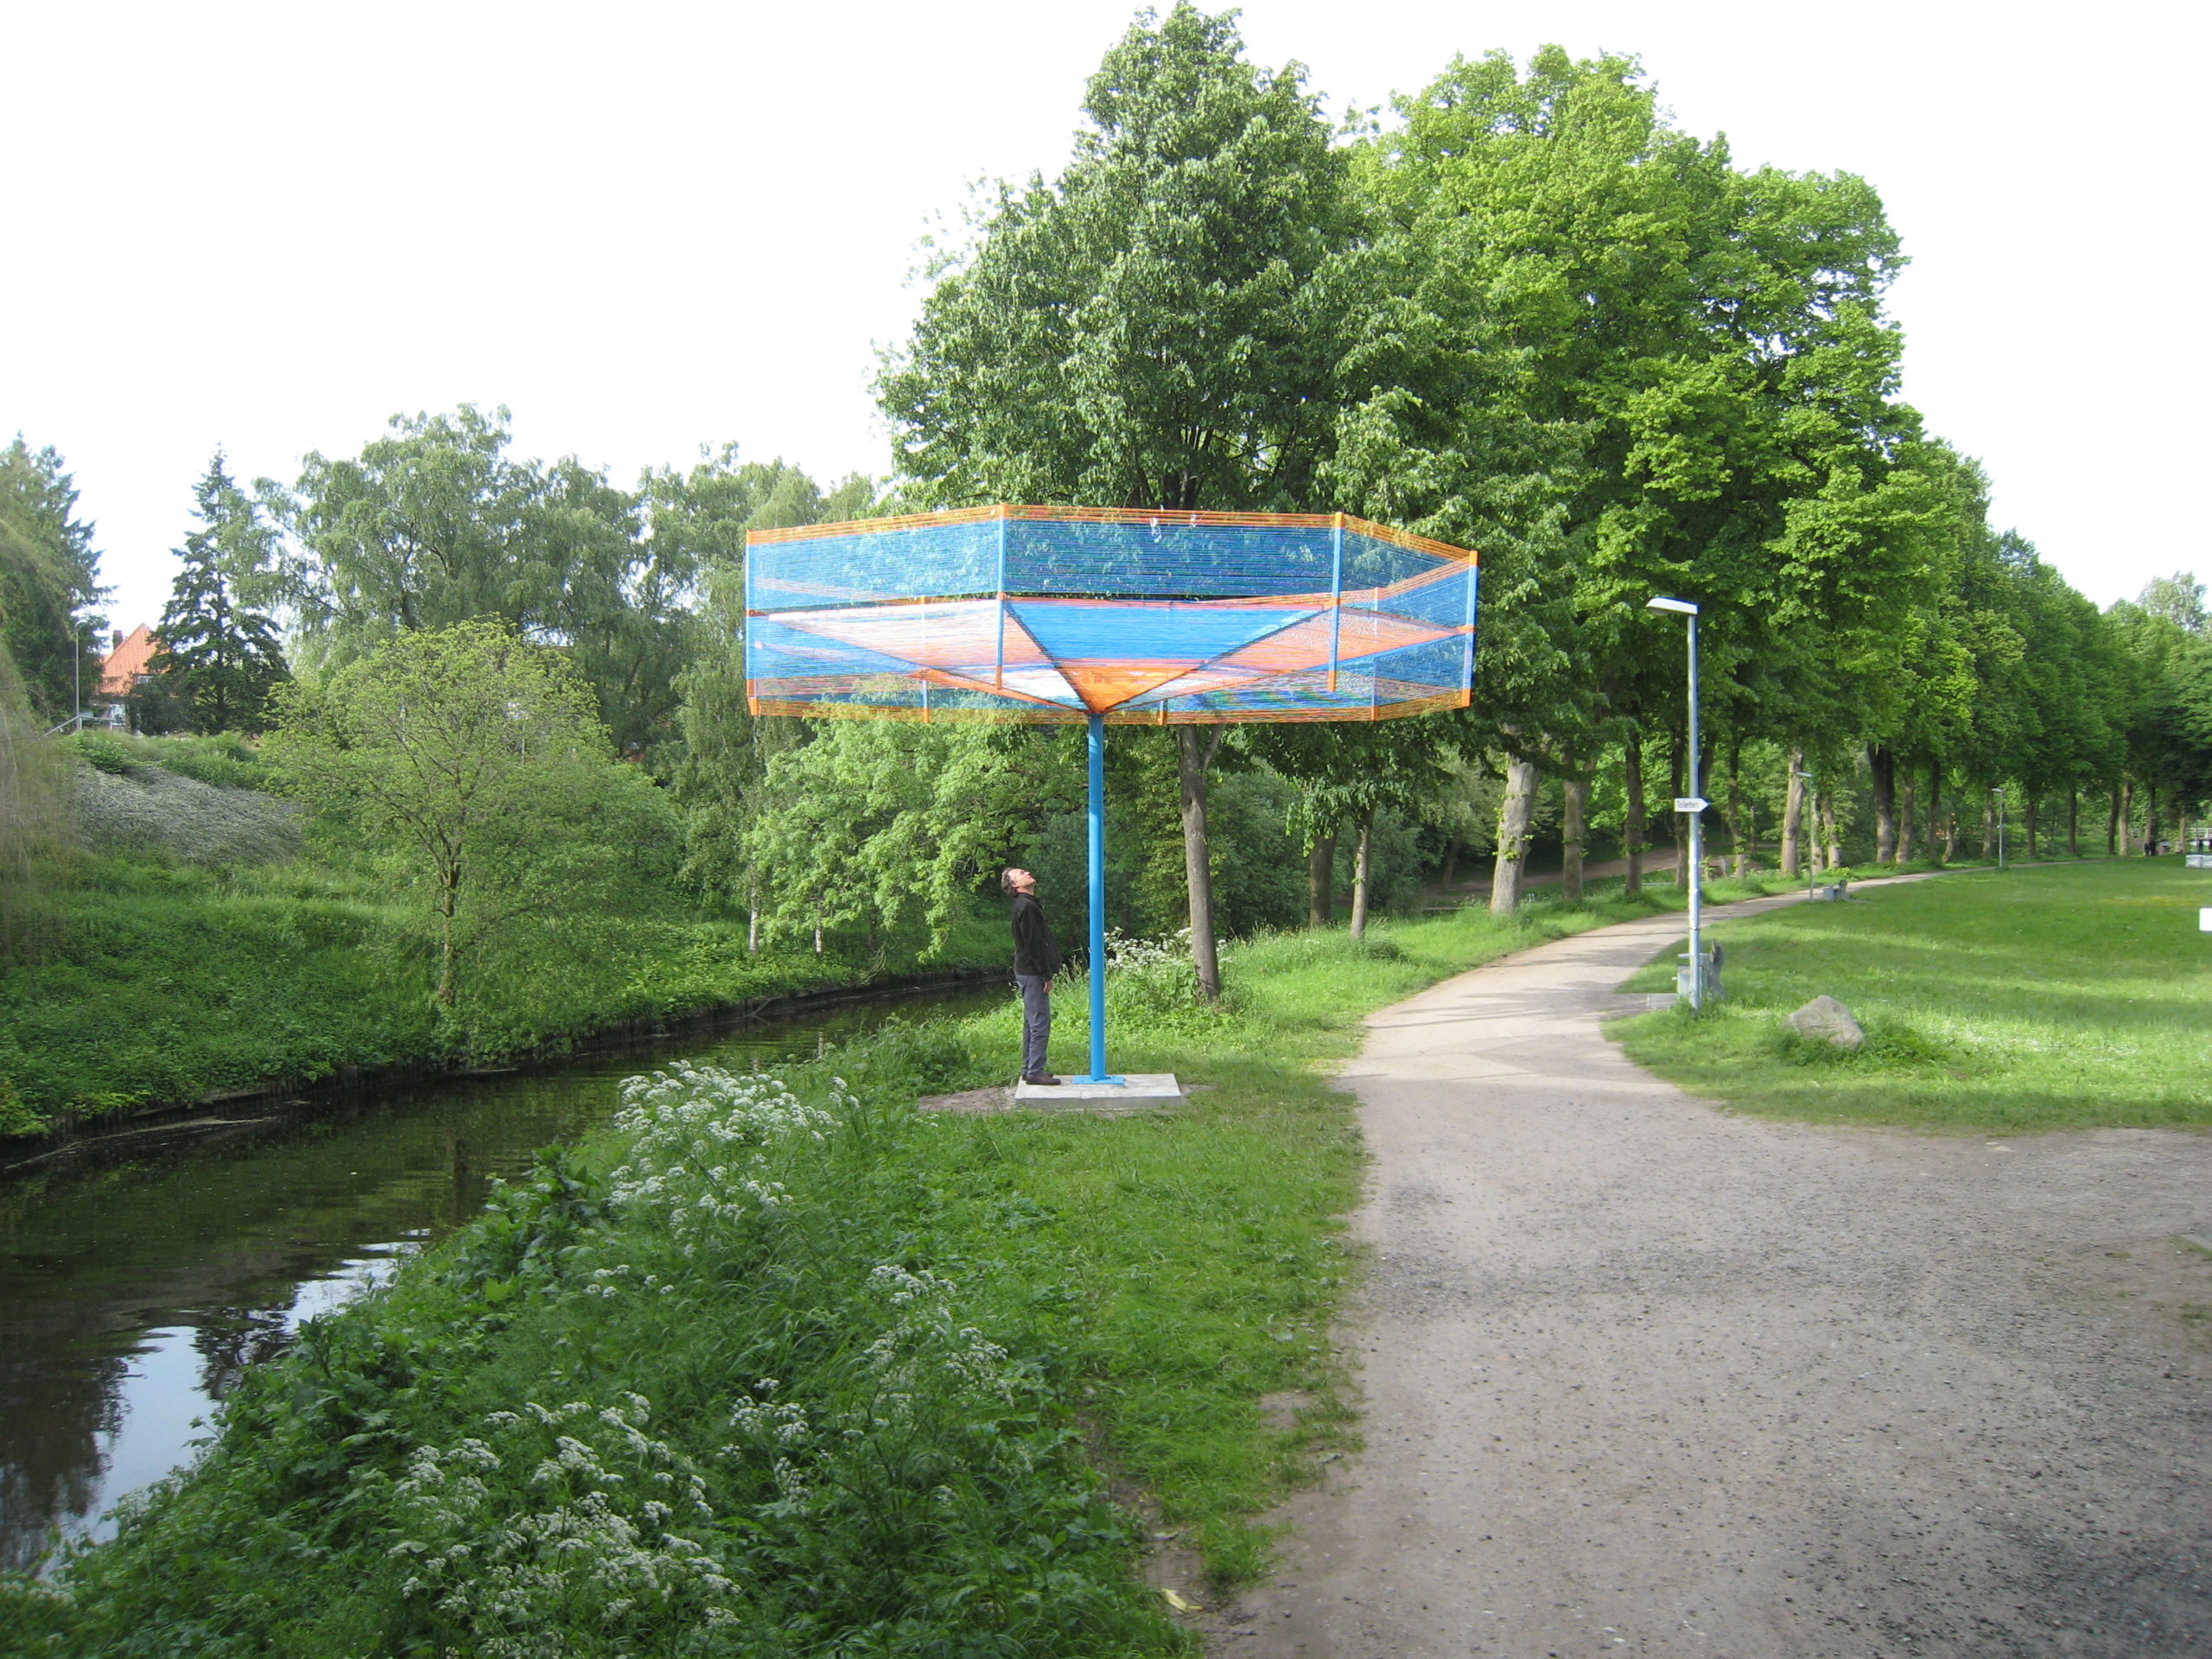 Carousel 2013 welded steel, 40,000 feet of baler twine, solar LED lights, 10x18x18ft (Skulpturenpark, Stade, Germany) day